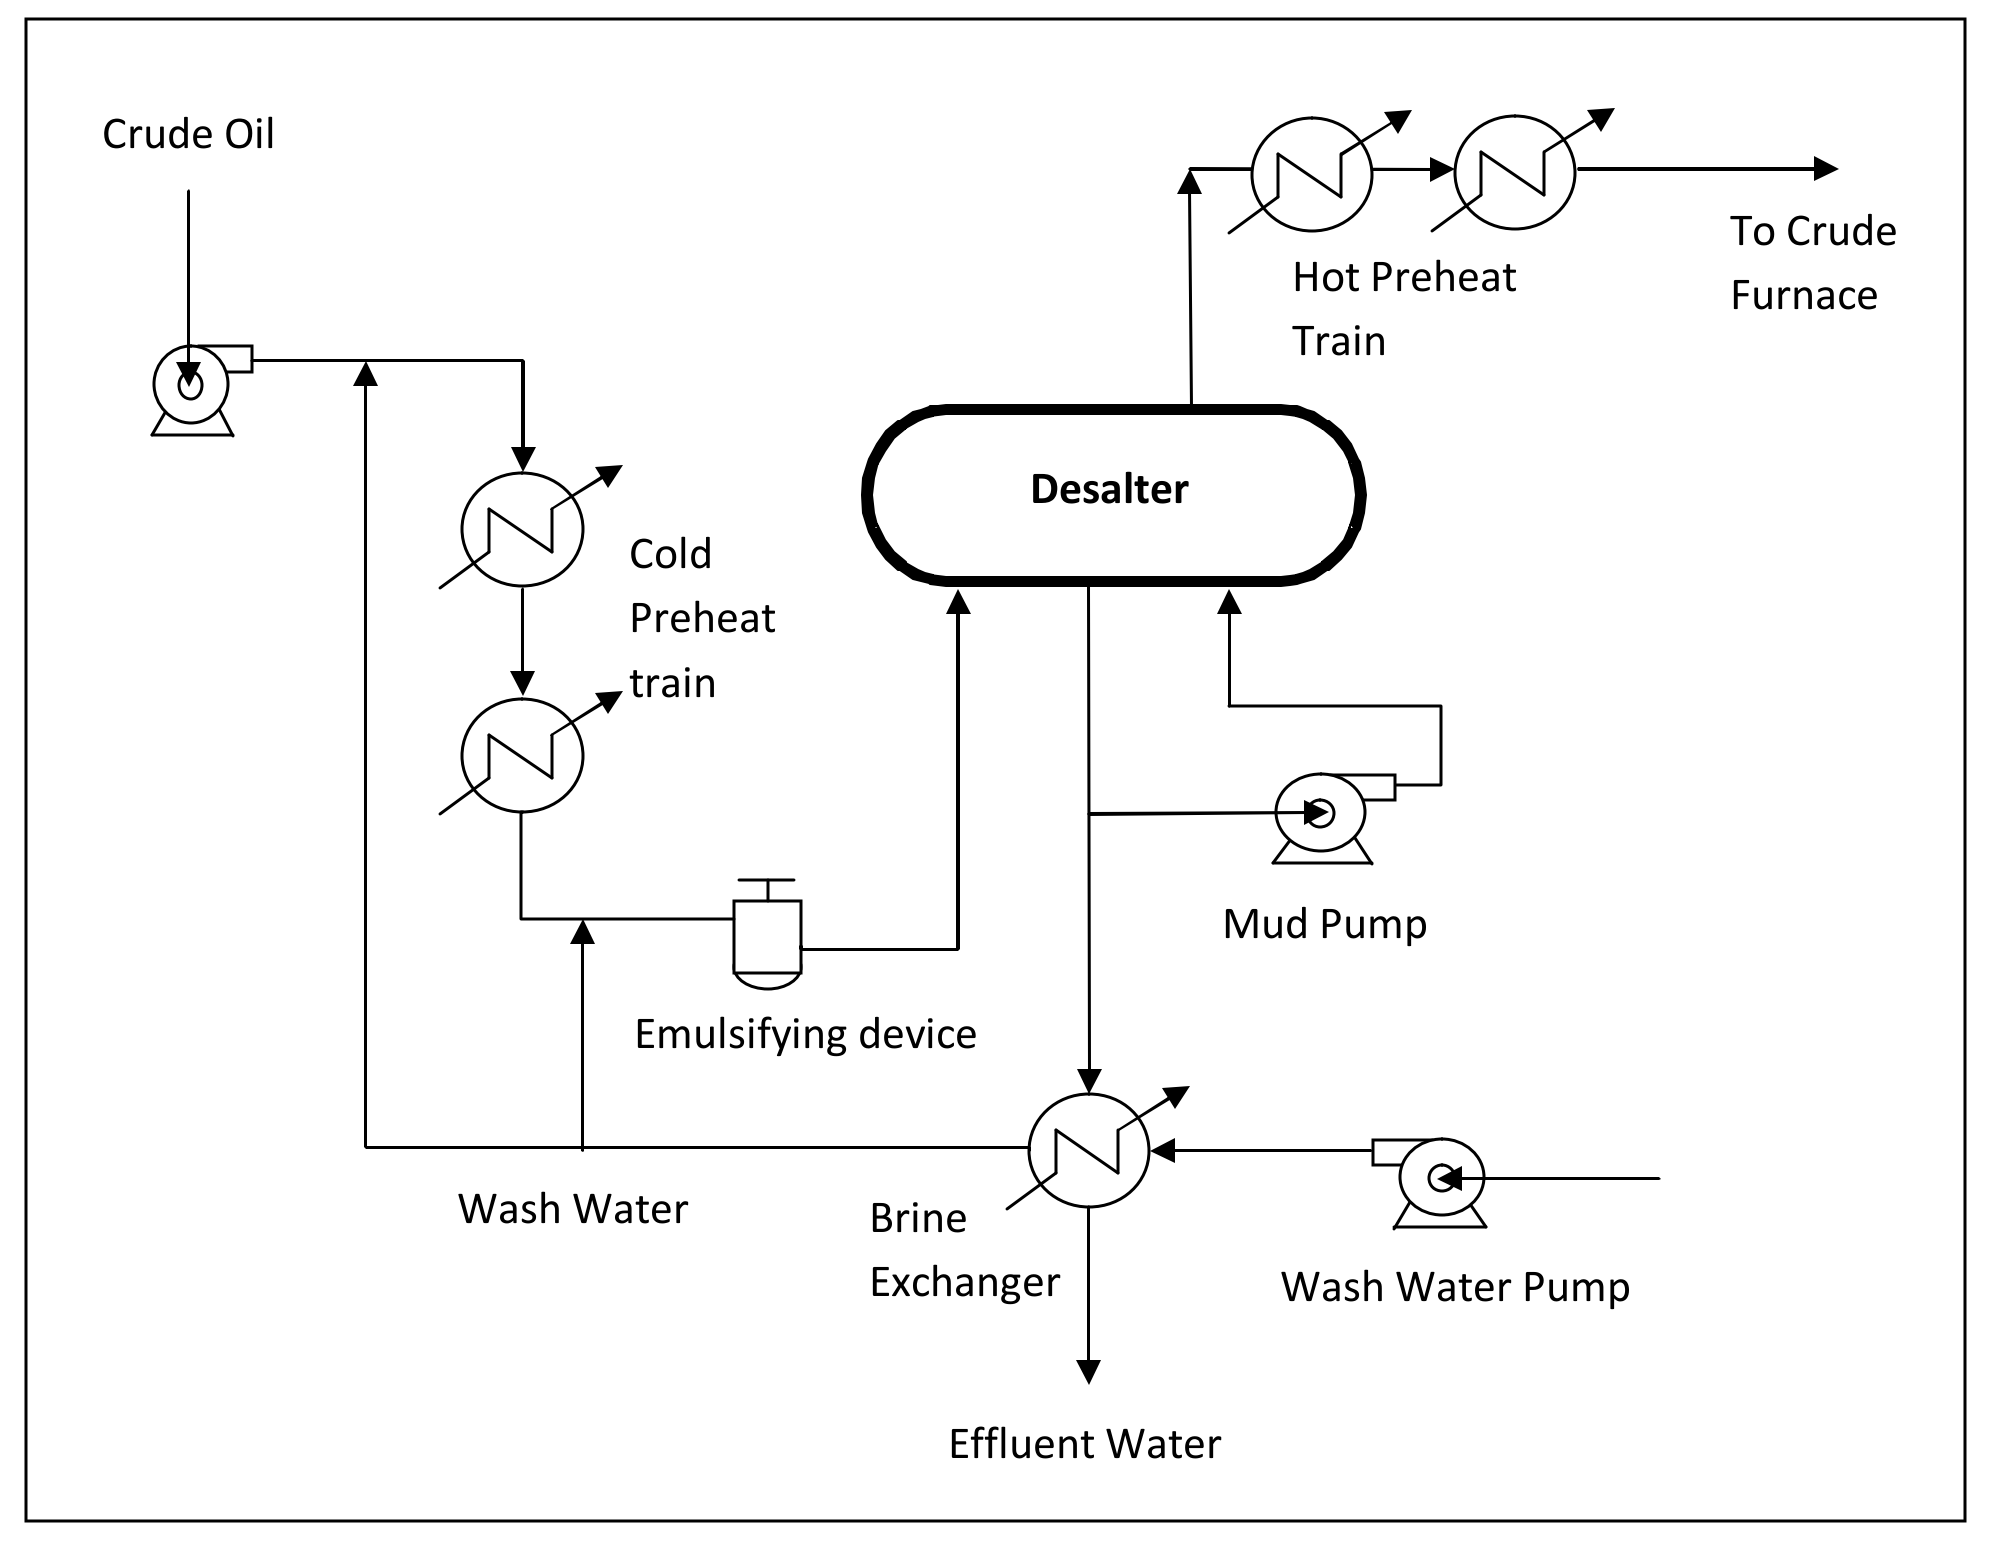 hight resolution of crude oil desalting unit